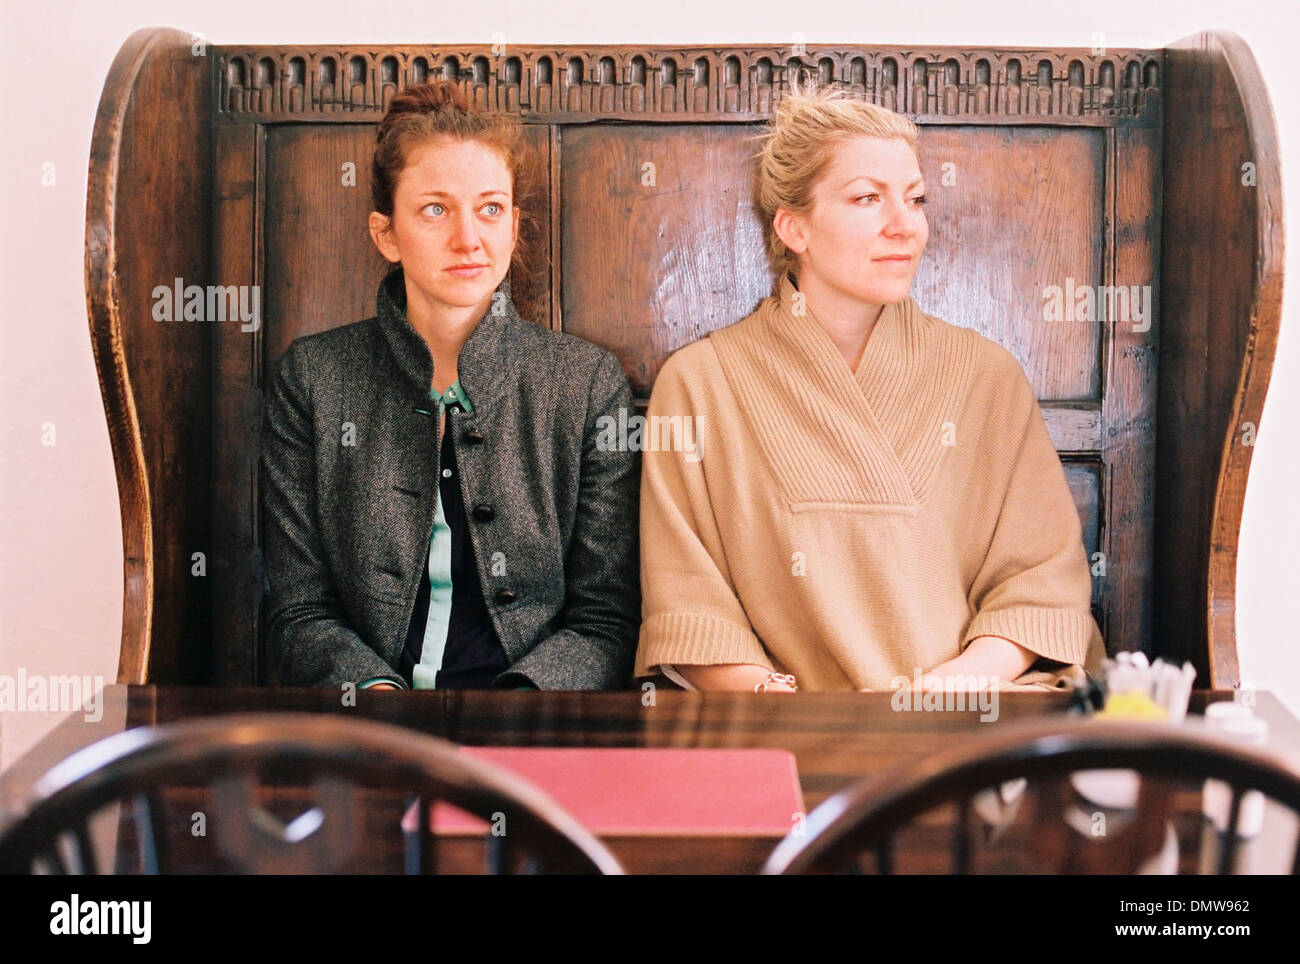 Traditional pub seat with a high back and curved sides. Two women sitting at a table. - Stock Image